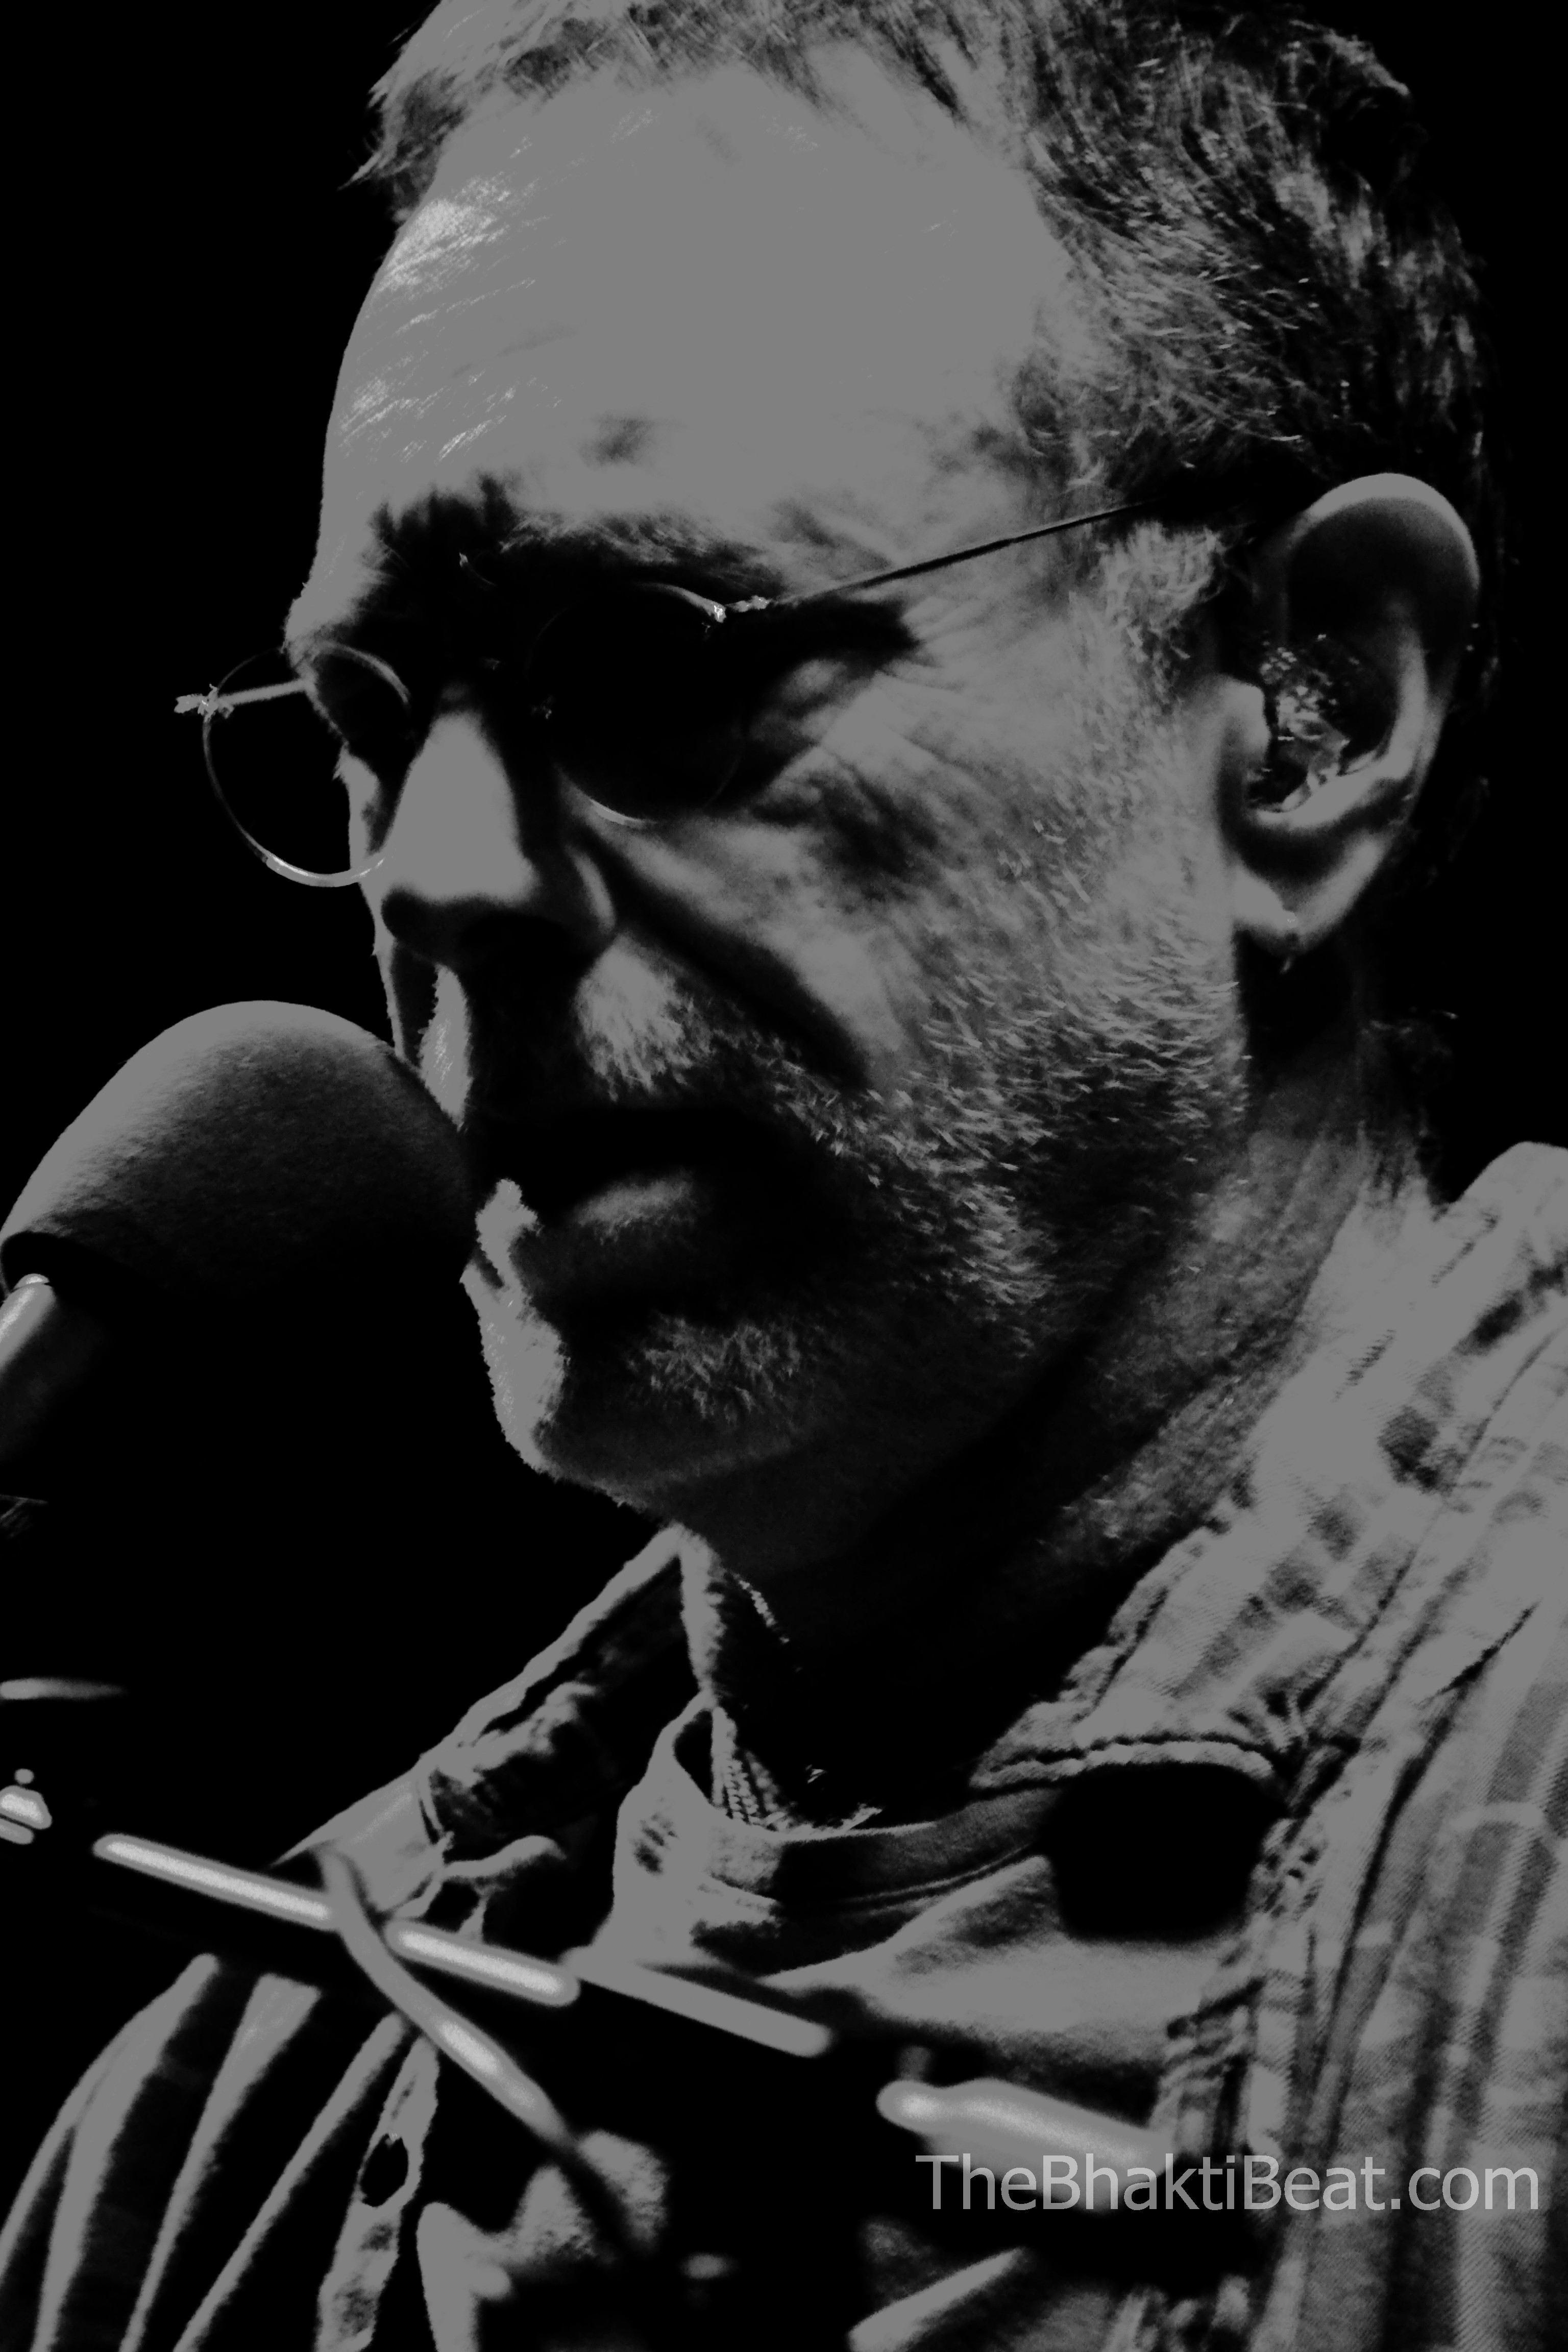 Thumbnail image for Krishna Das Goes to Prison for Call and Response (Video Interview, Photos)